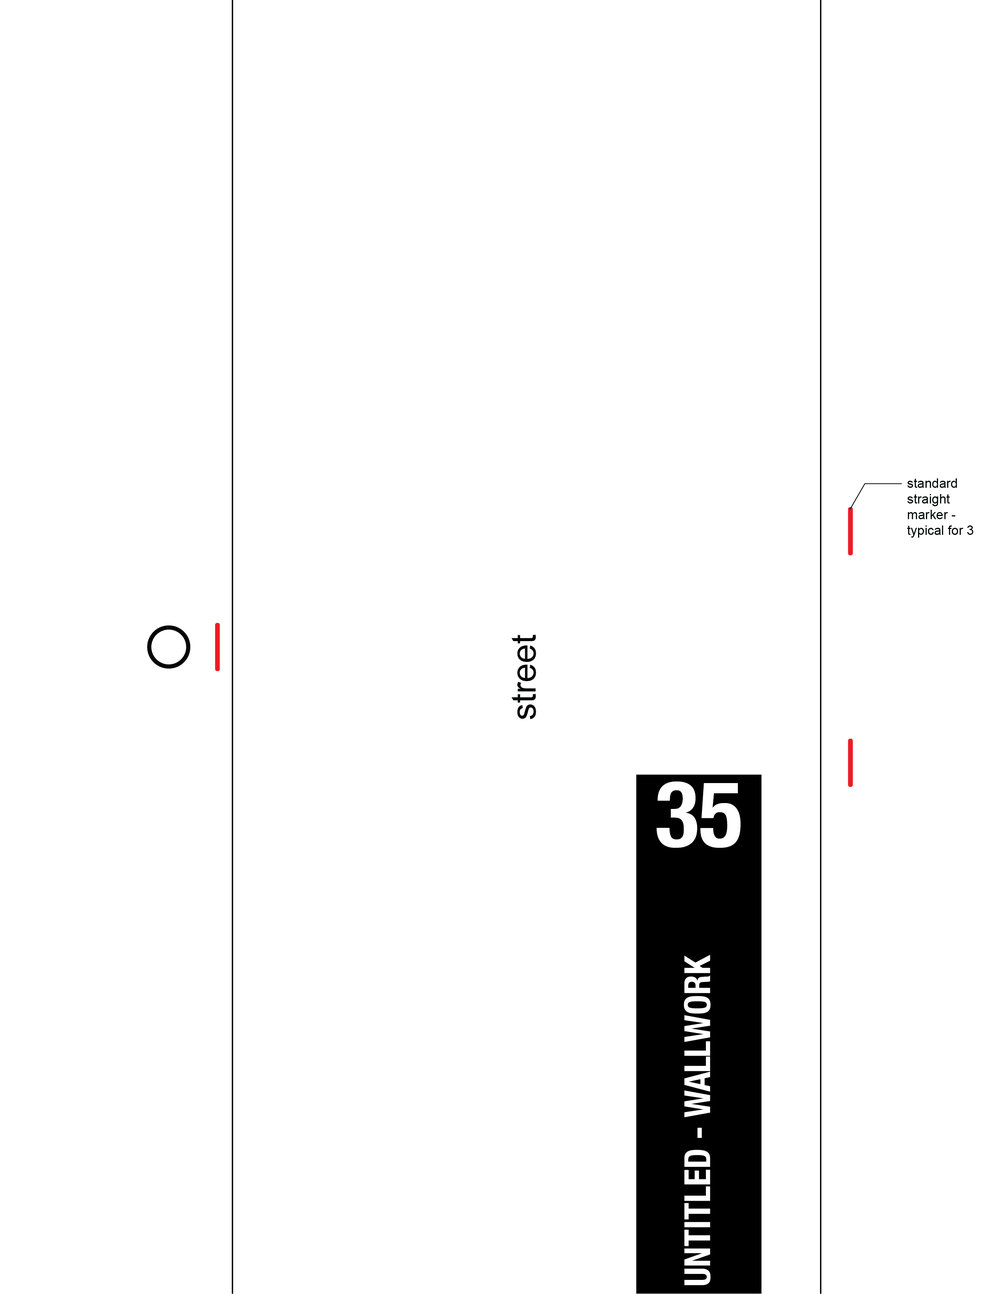 Marfa Diagrams-02.jpg